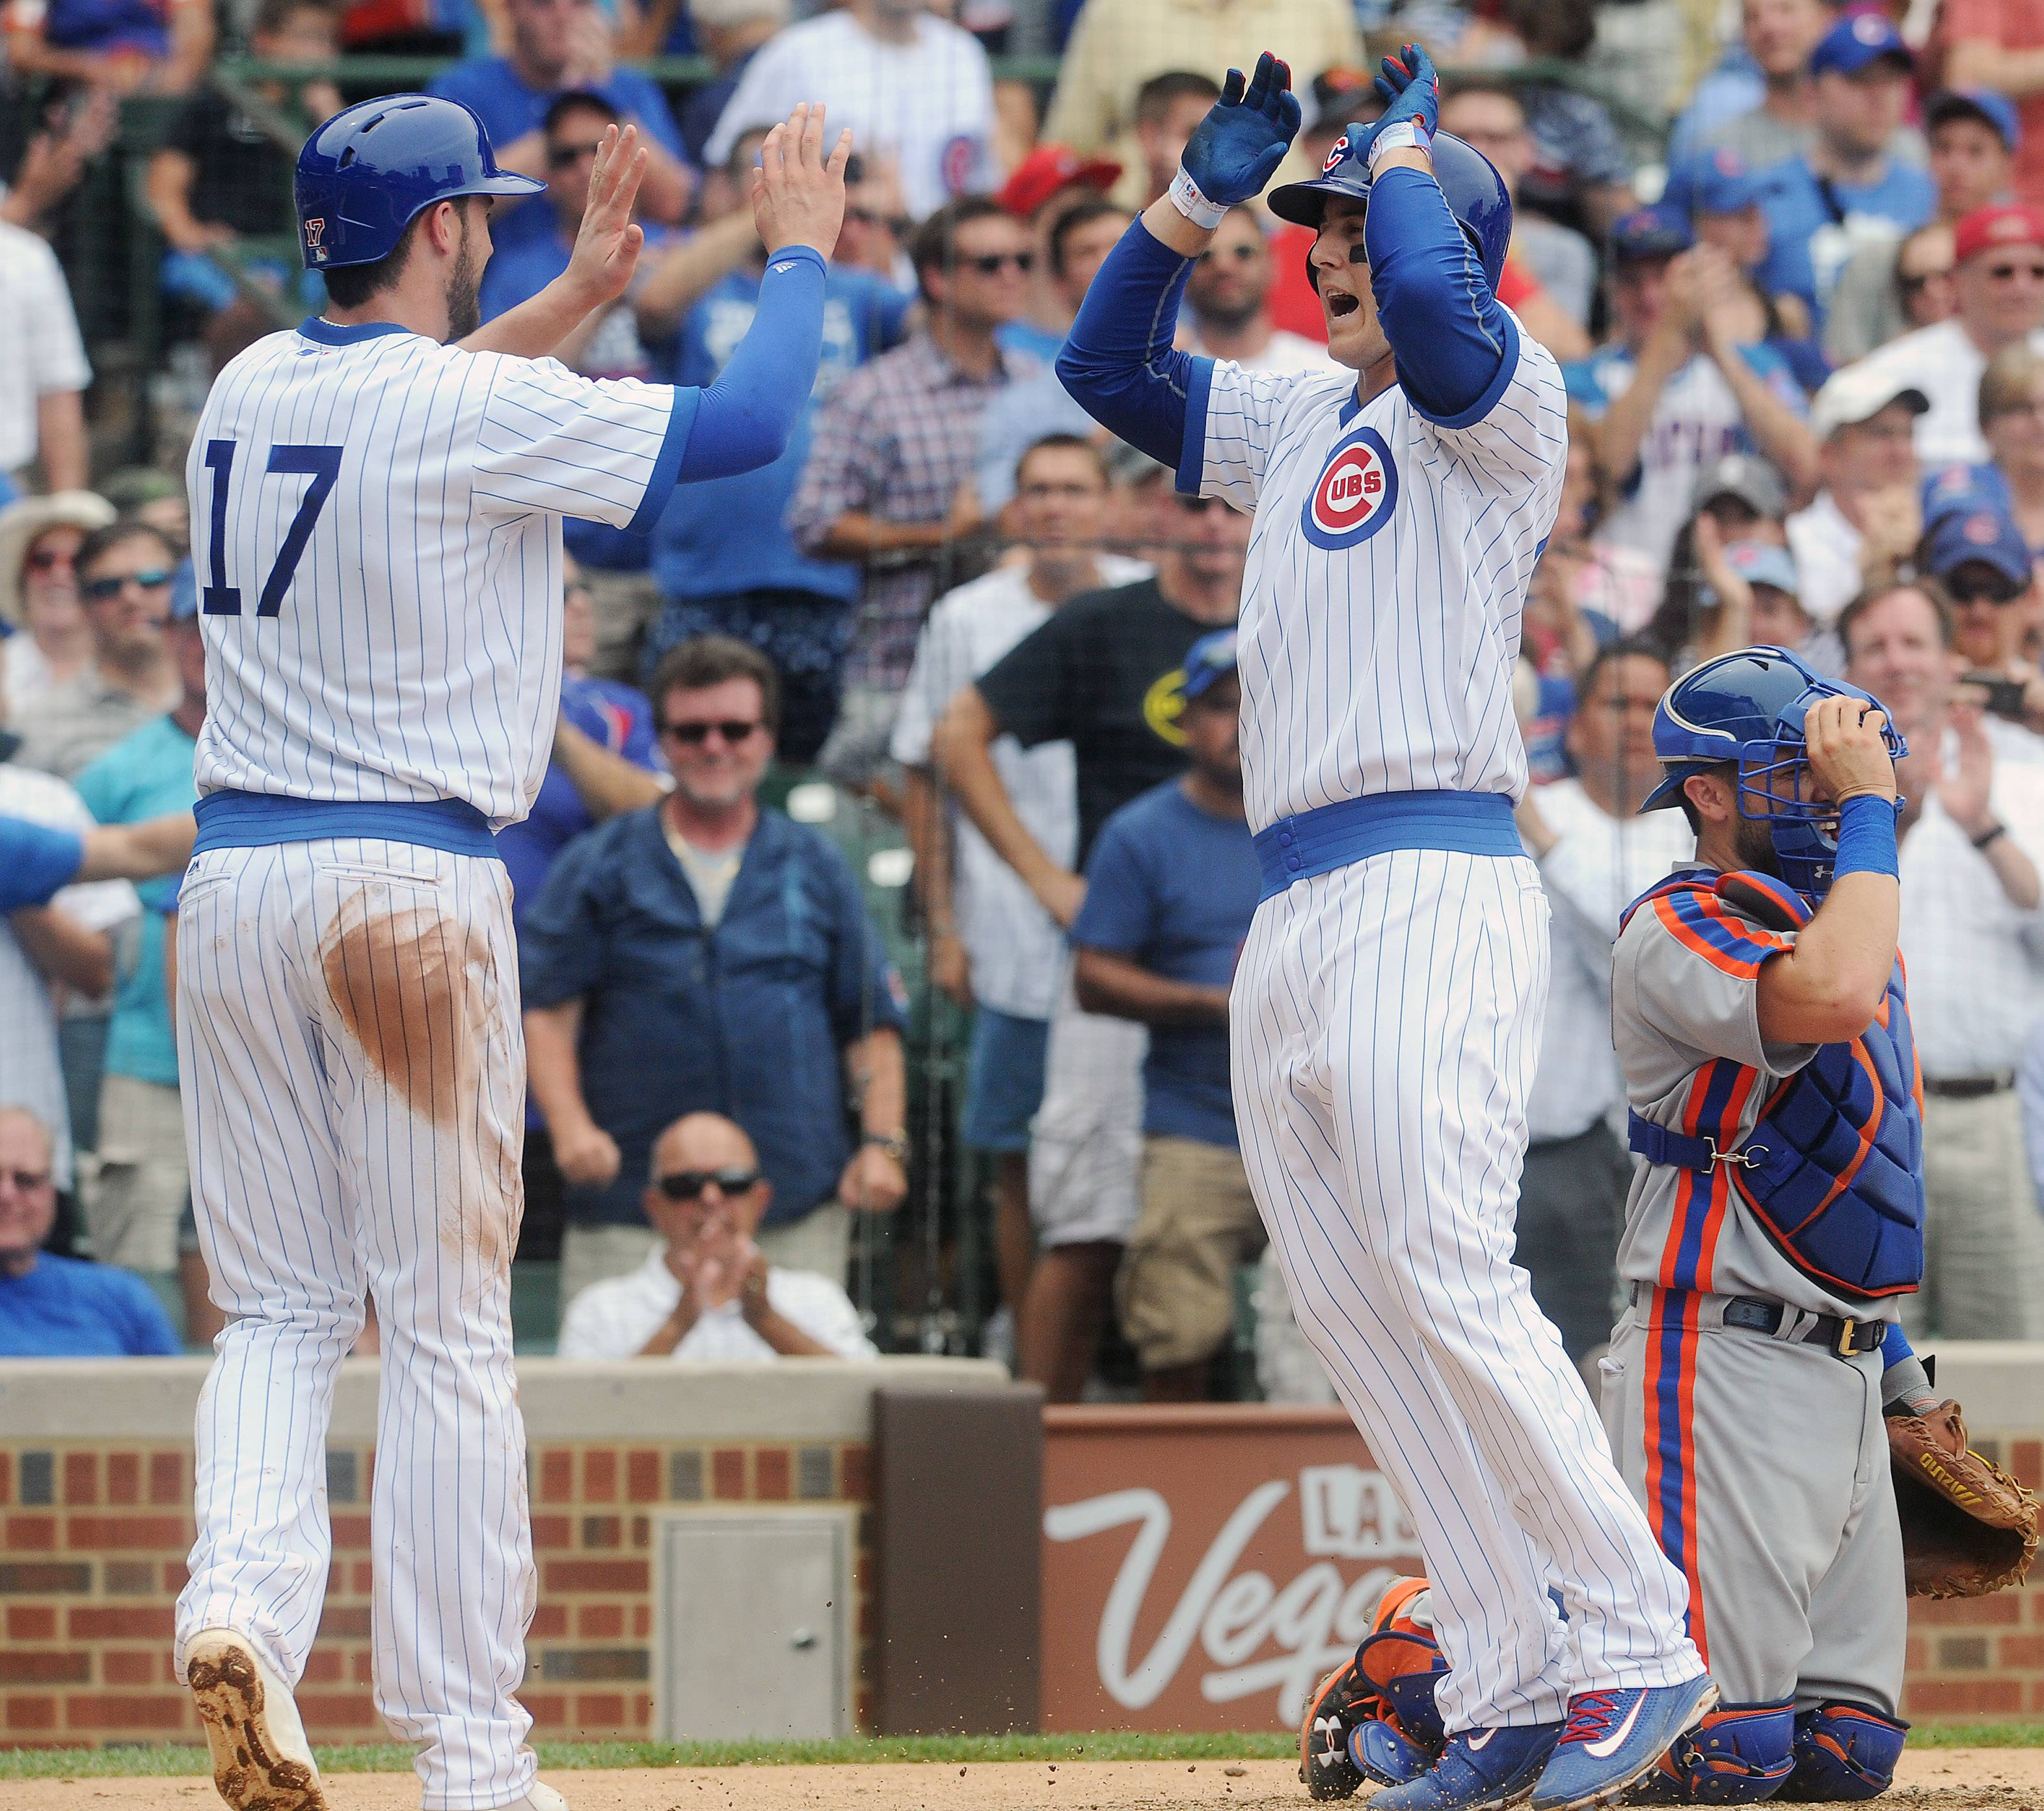 Cubs first baseman Anthony Rizzo is congratulated by teammate Kris Bryant in the 5th inning after his second home run put the Cubs ahead 5-0 against the New York Mets at Wrigley Field.